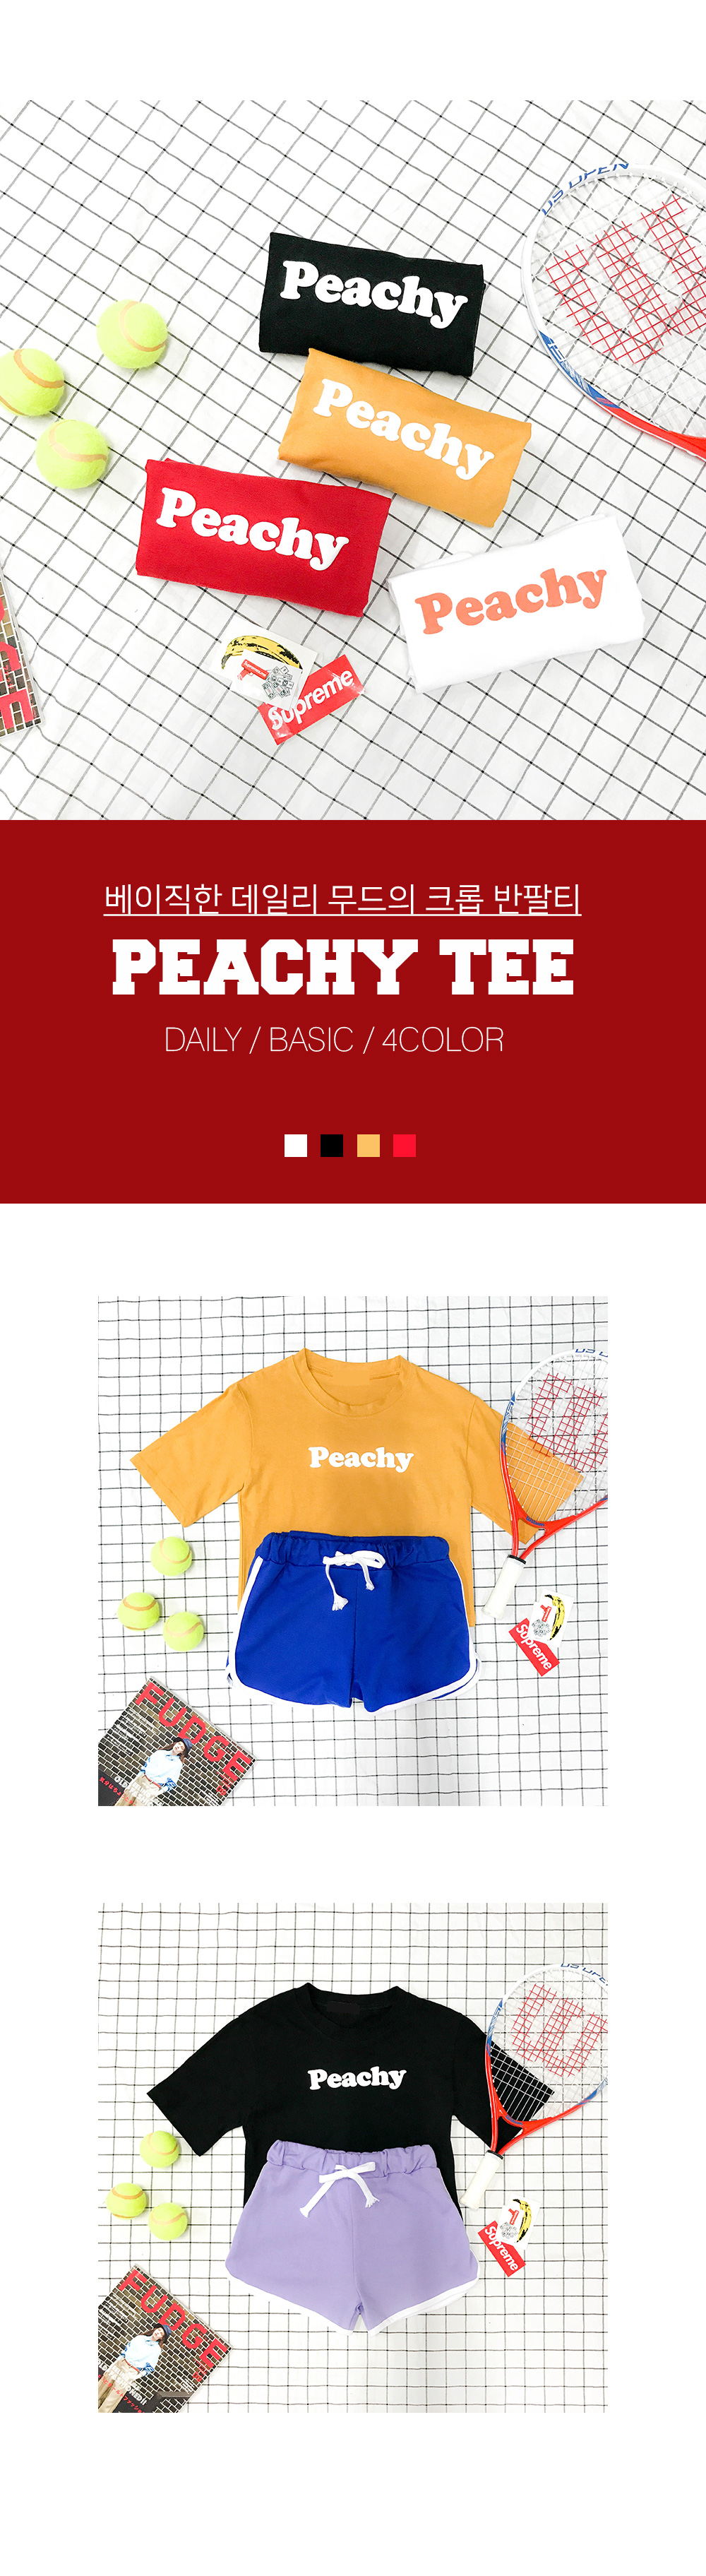 Pitch Pitch Short Sleeve Cropped (t4728)